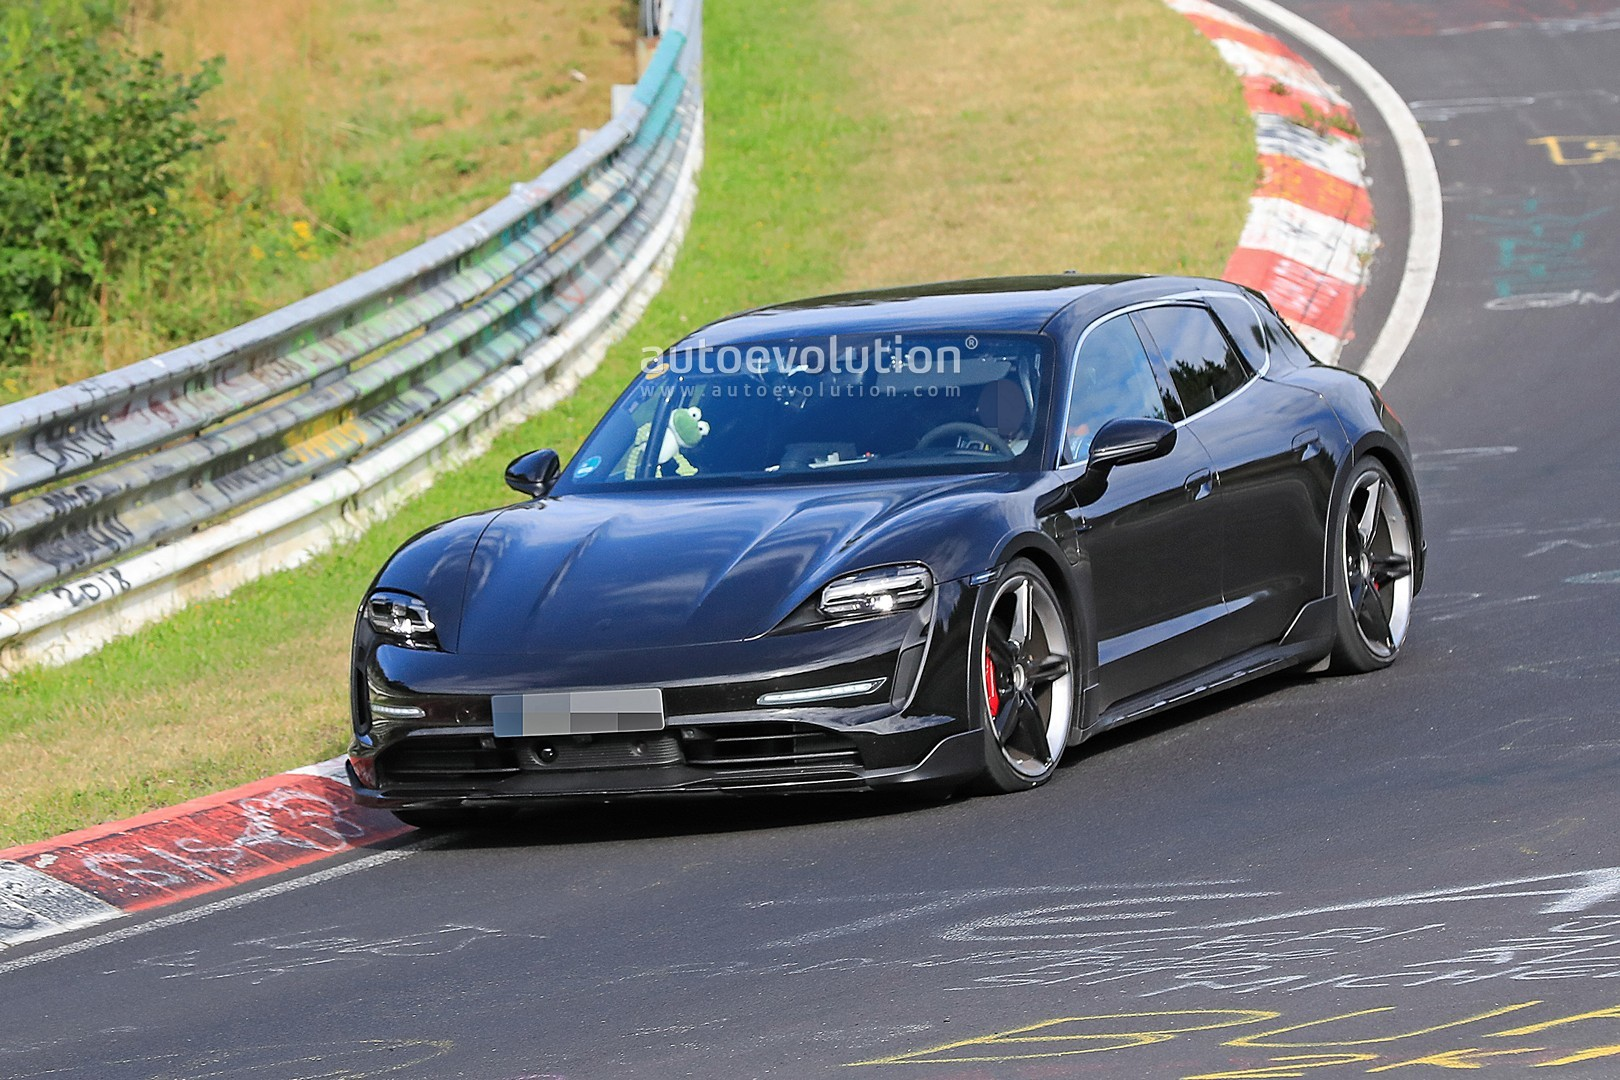 2020 - [Porsche] Taycan Sport Turismo - Page 2 Porsche-taycan-cross-turismo-spied-testing-hard-at-the-nurburgring_2